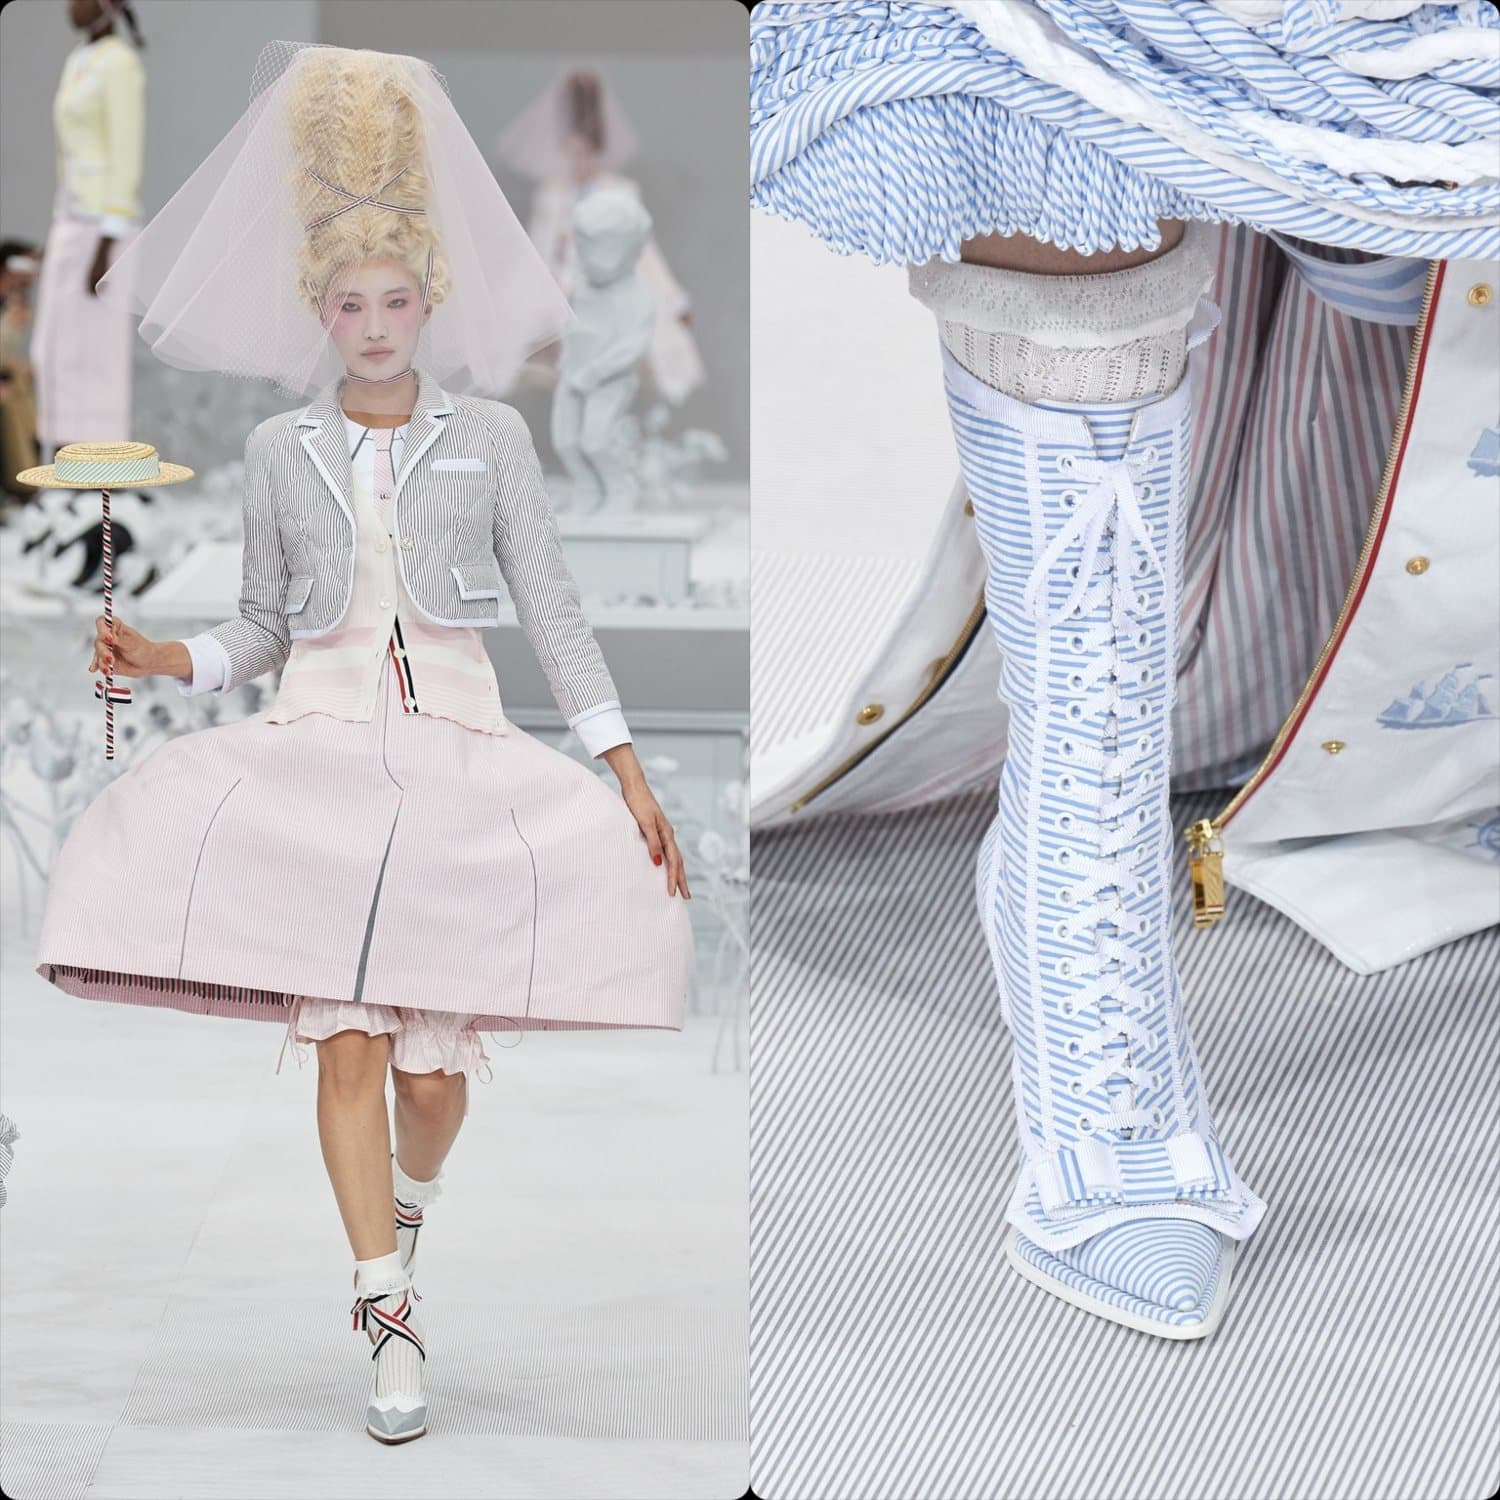 Thom Browne Spring Summer 2020 Ready-to-Wear Paris